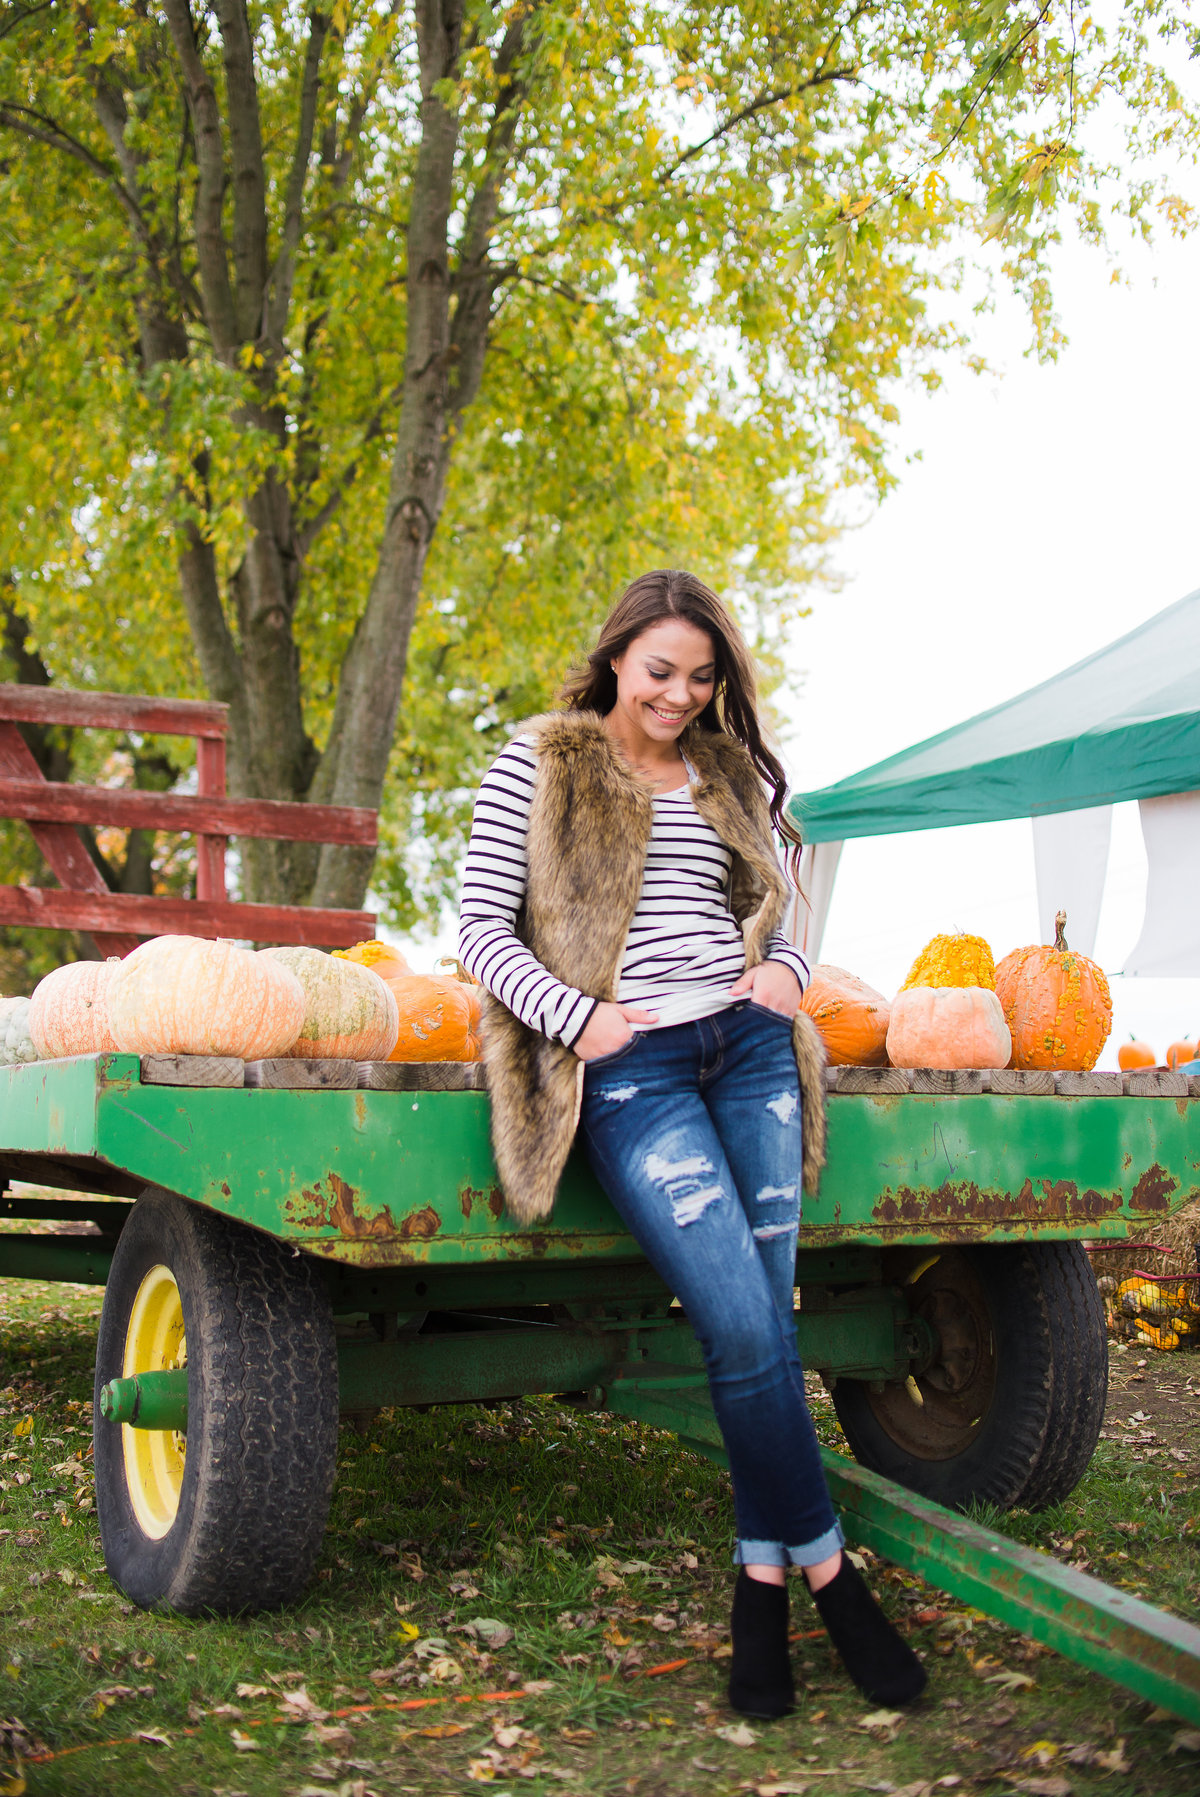 Senior Session Girl with Pumpkin Wagon